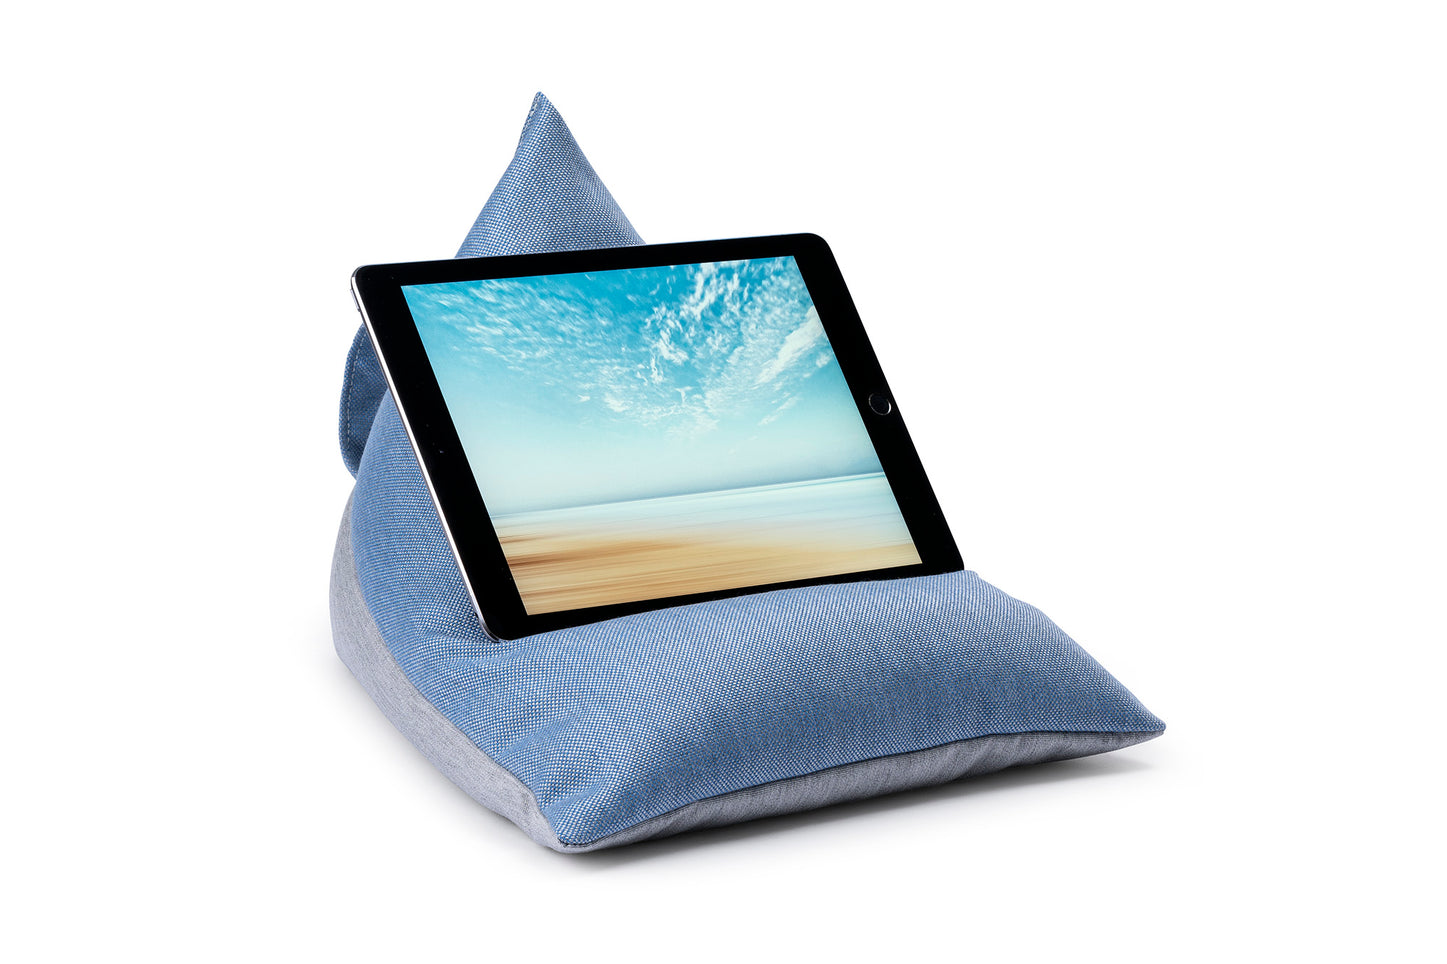 iPad, Tablet & eReader Bean Bag Stand in Cuba Ice/Grey Base armadillosun